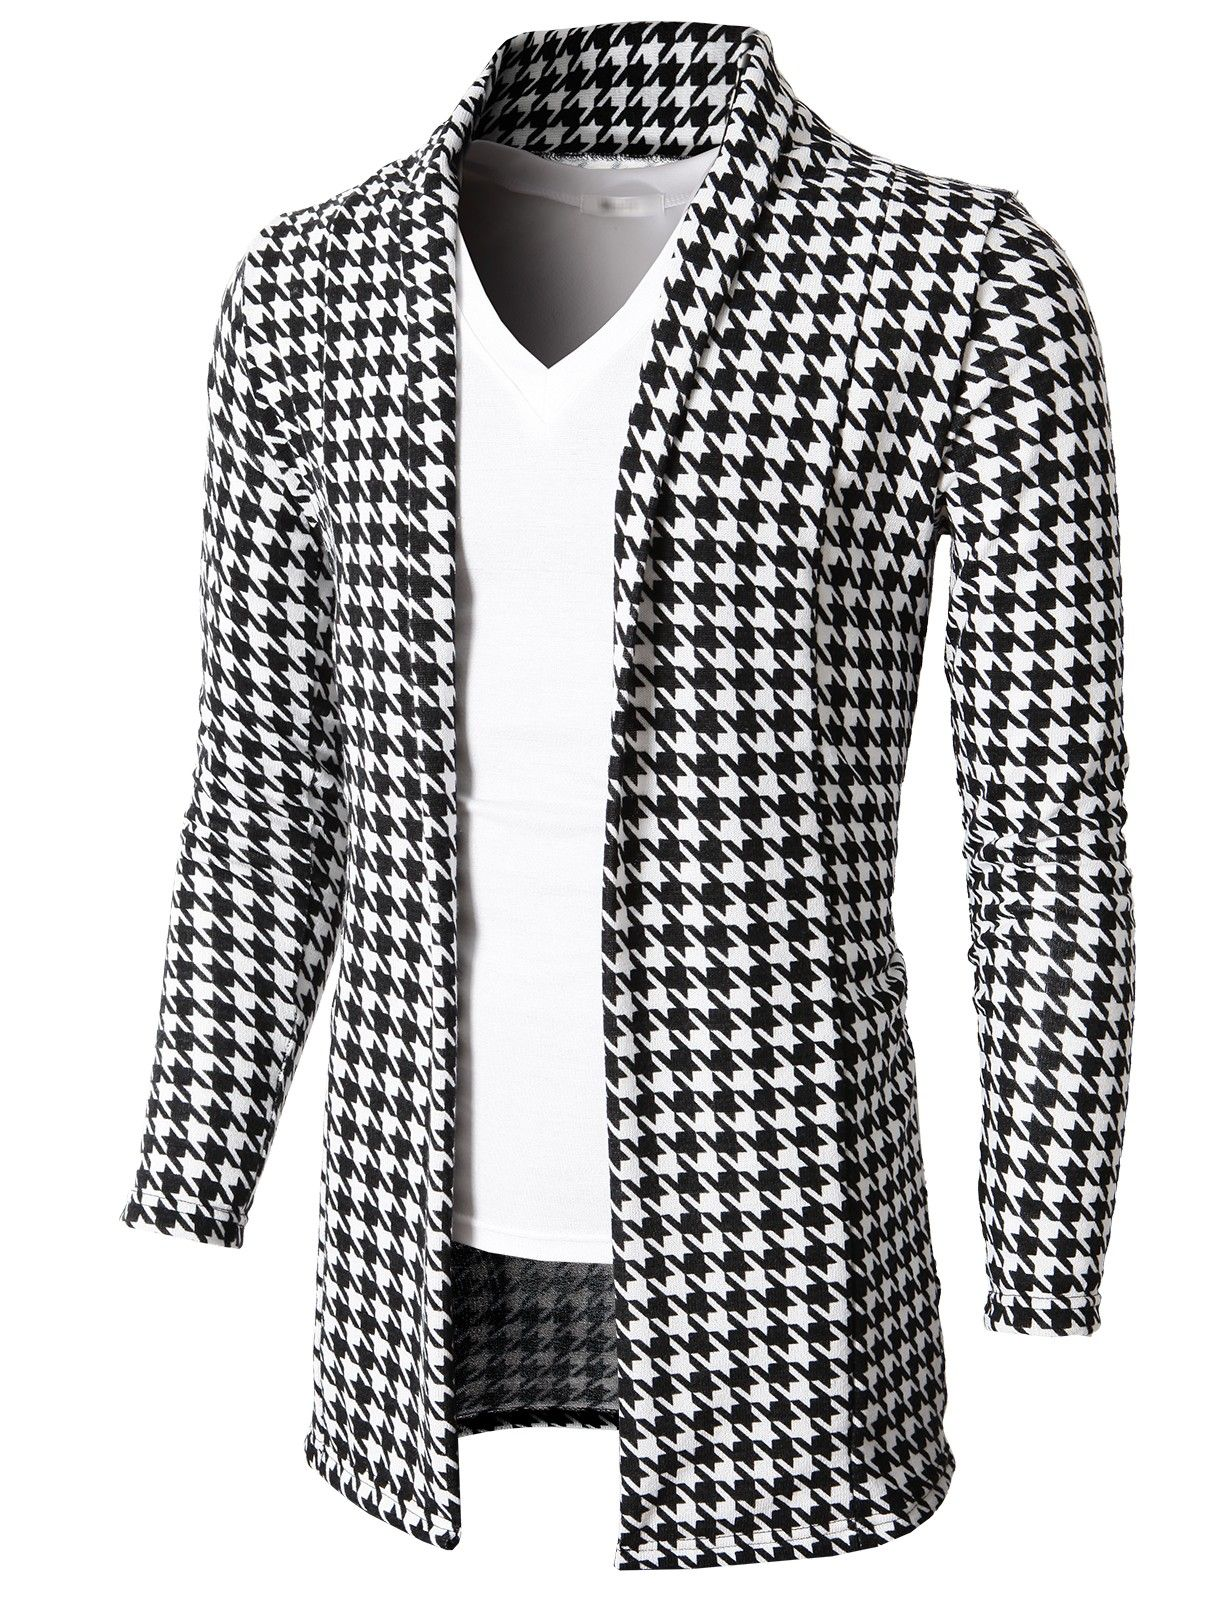 Doublju Men's Shawl Collar Cardigan Sweater With Simple No Button ...